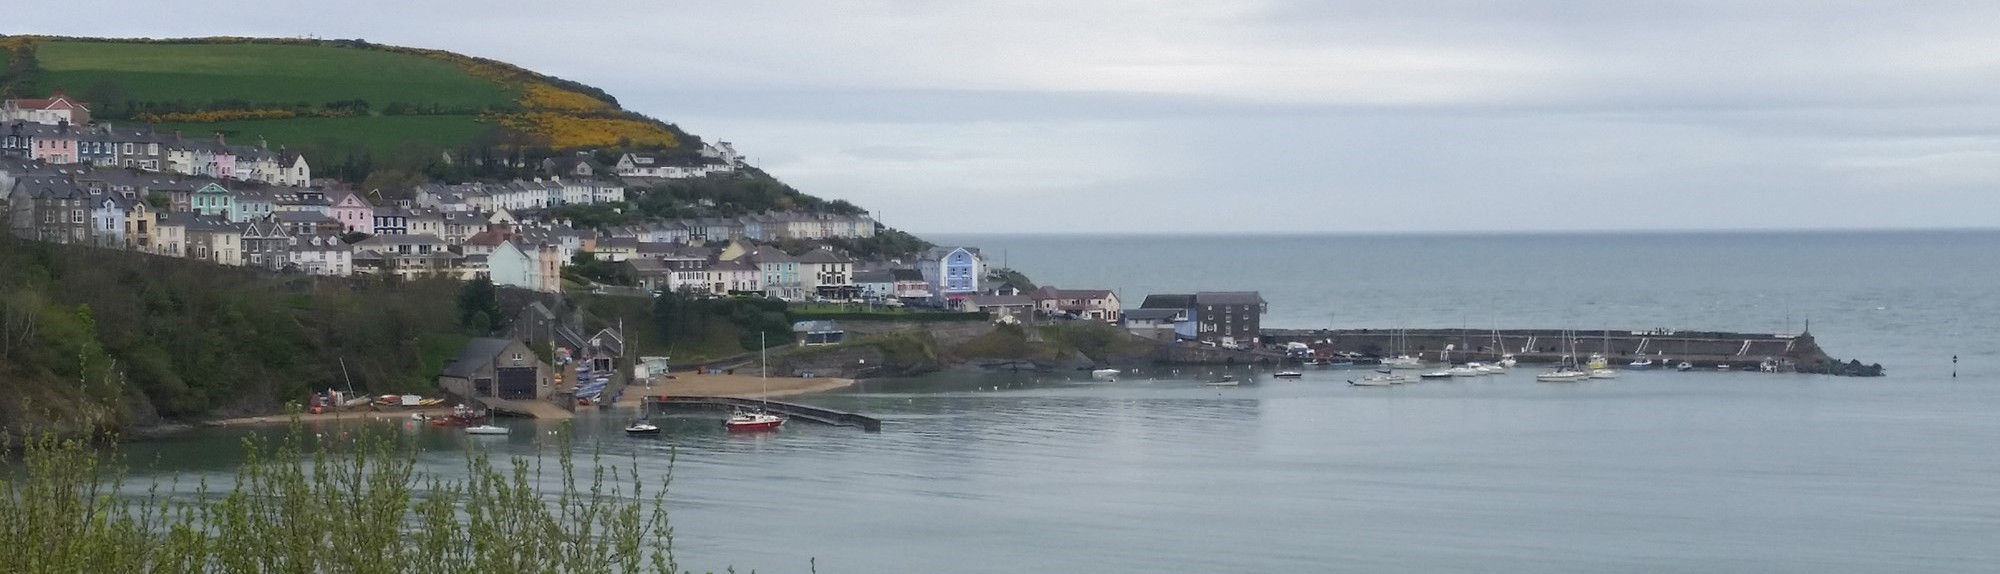 Approaching New Quay